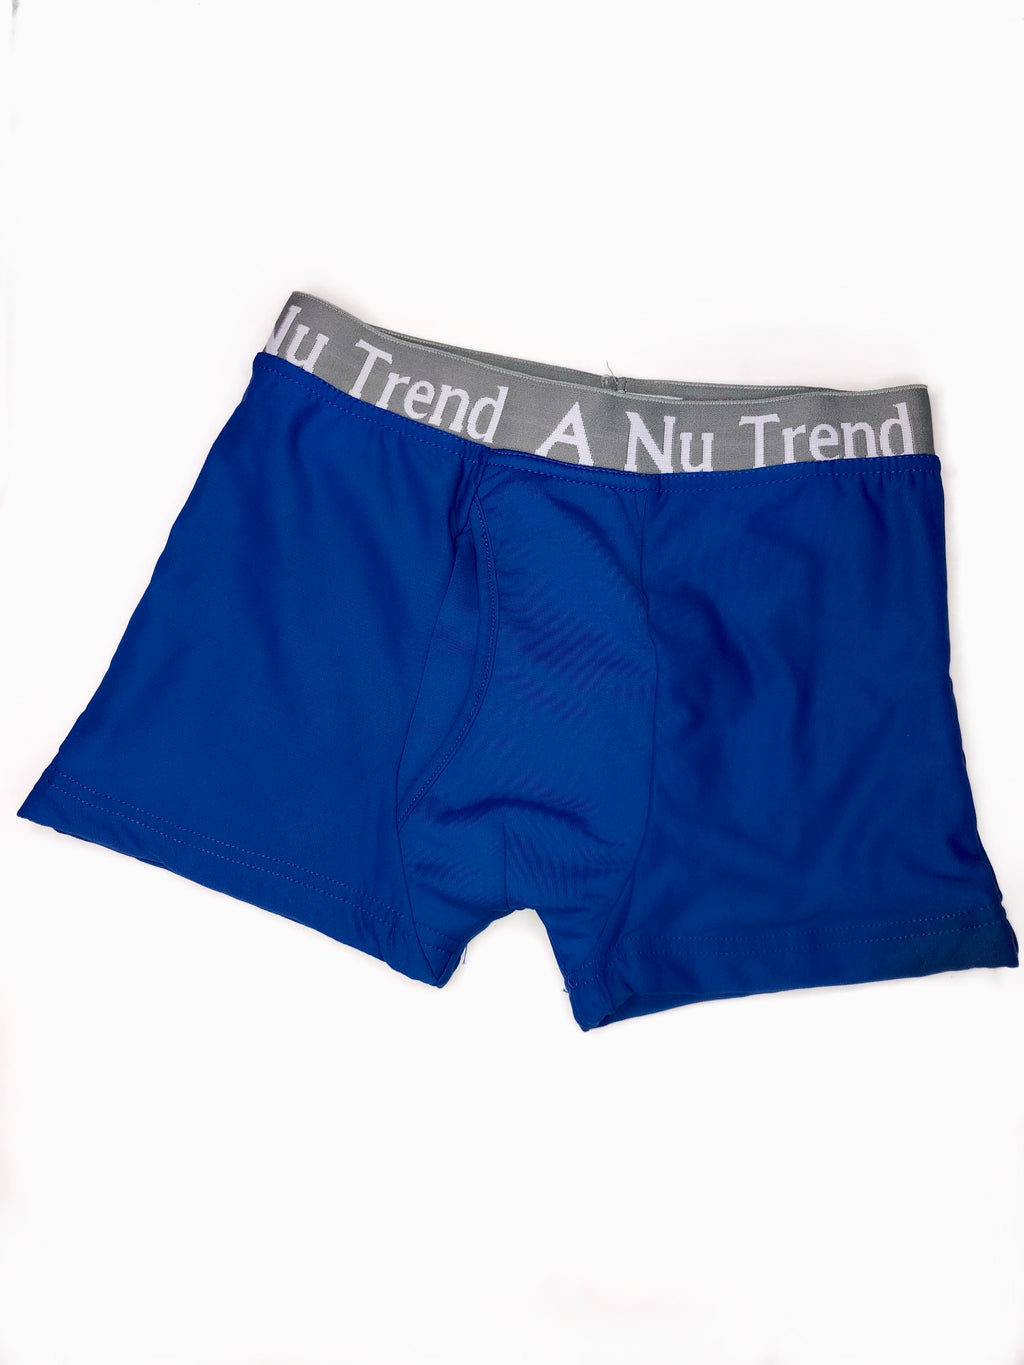 EMF/EMR Male Brief - A Nu Trend